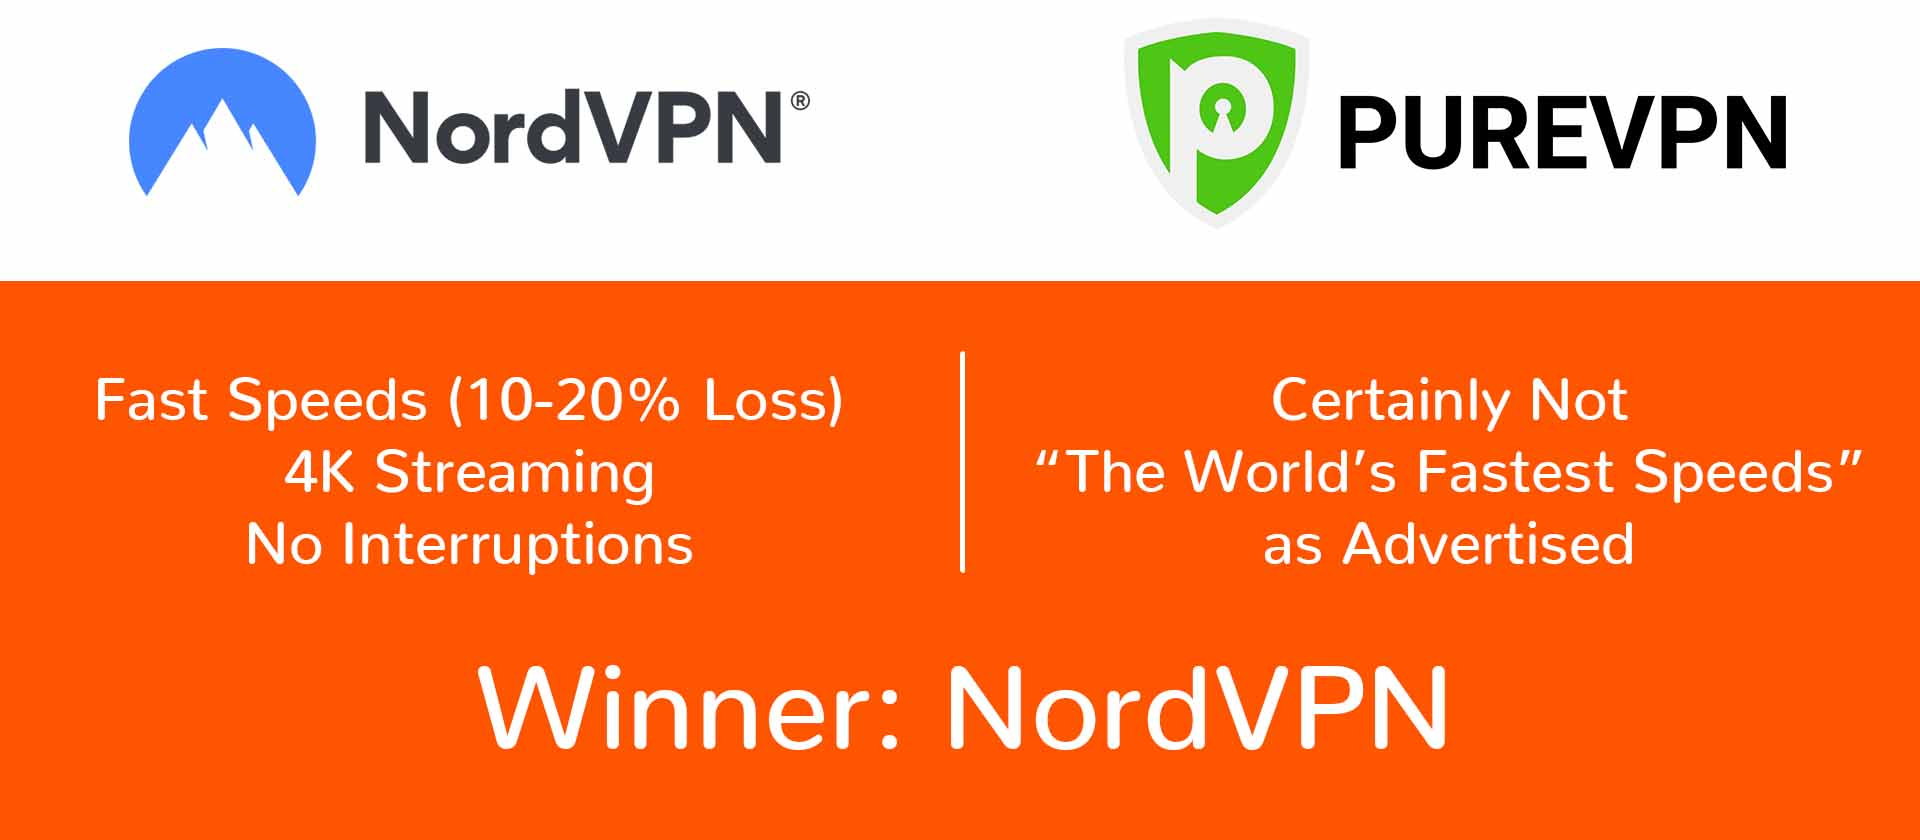 nordvpn and purevpn speed comparison